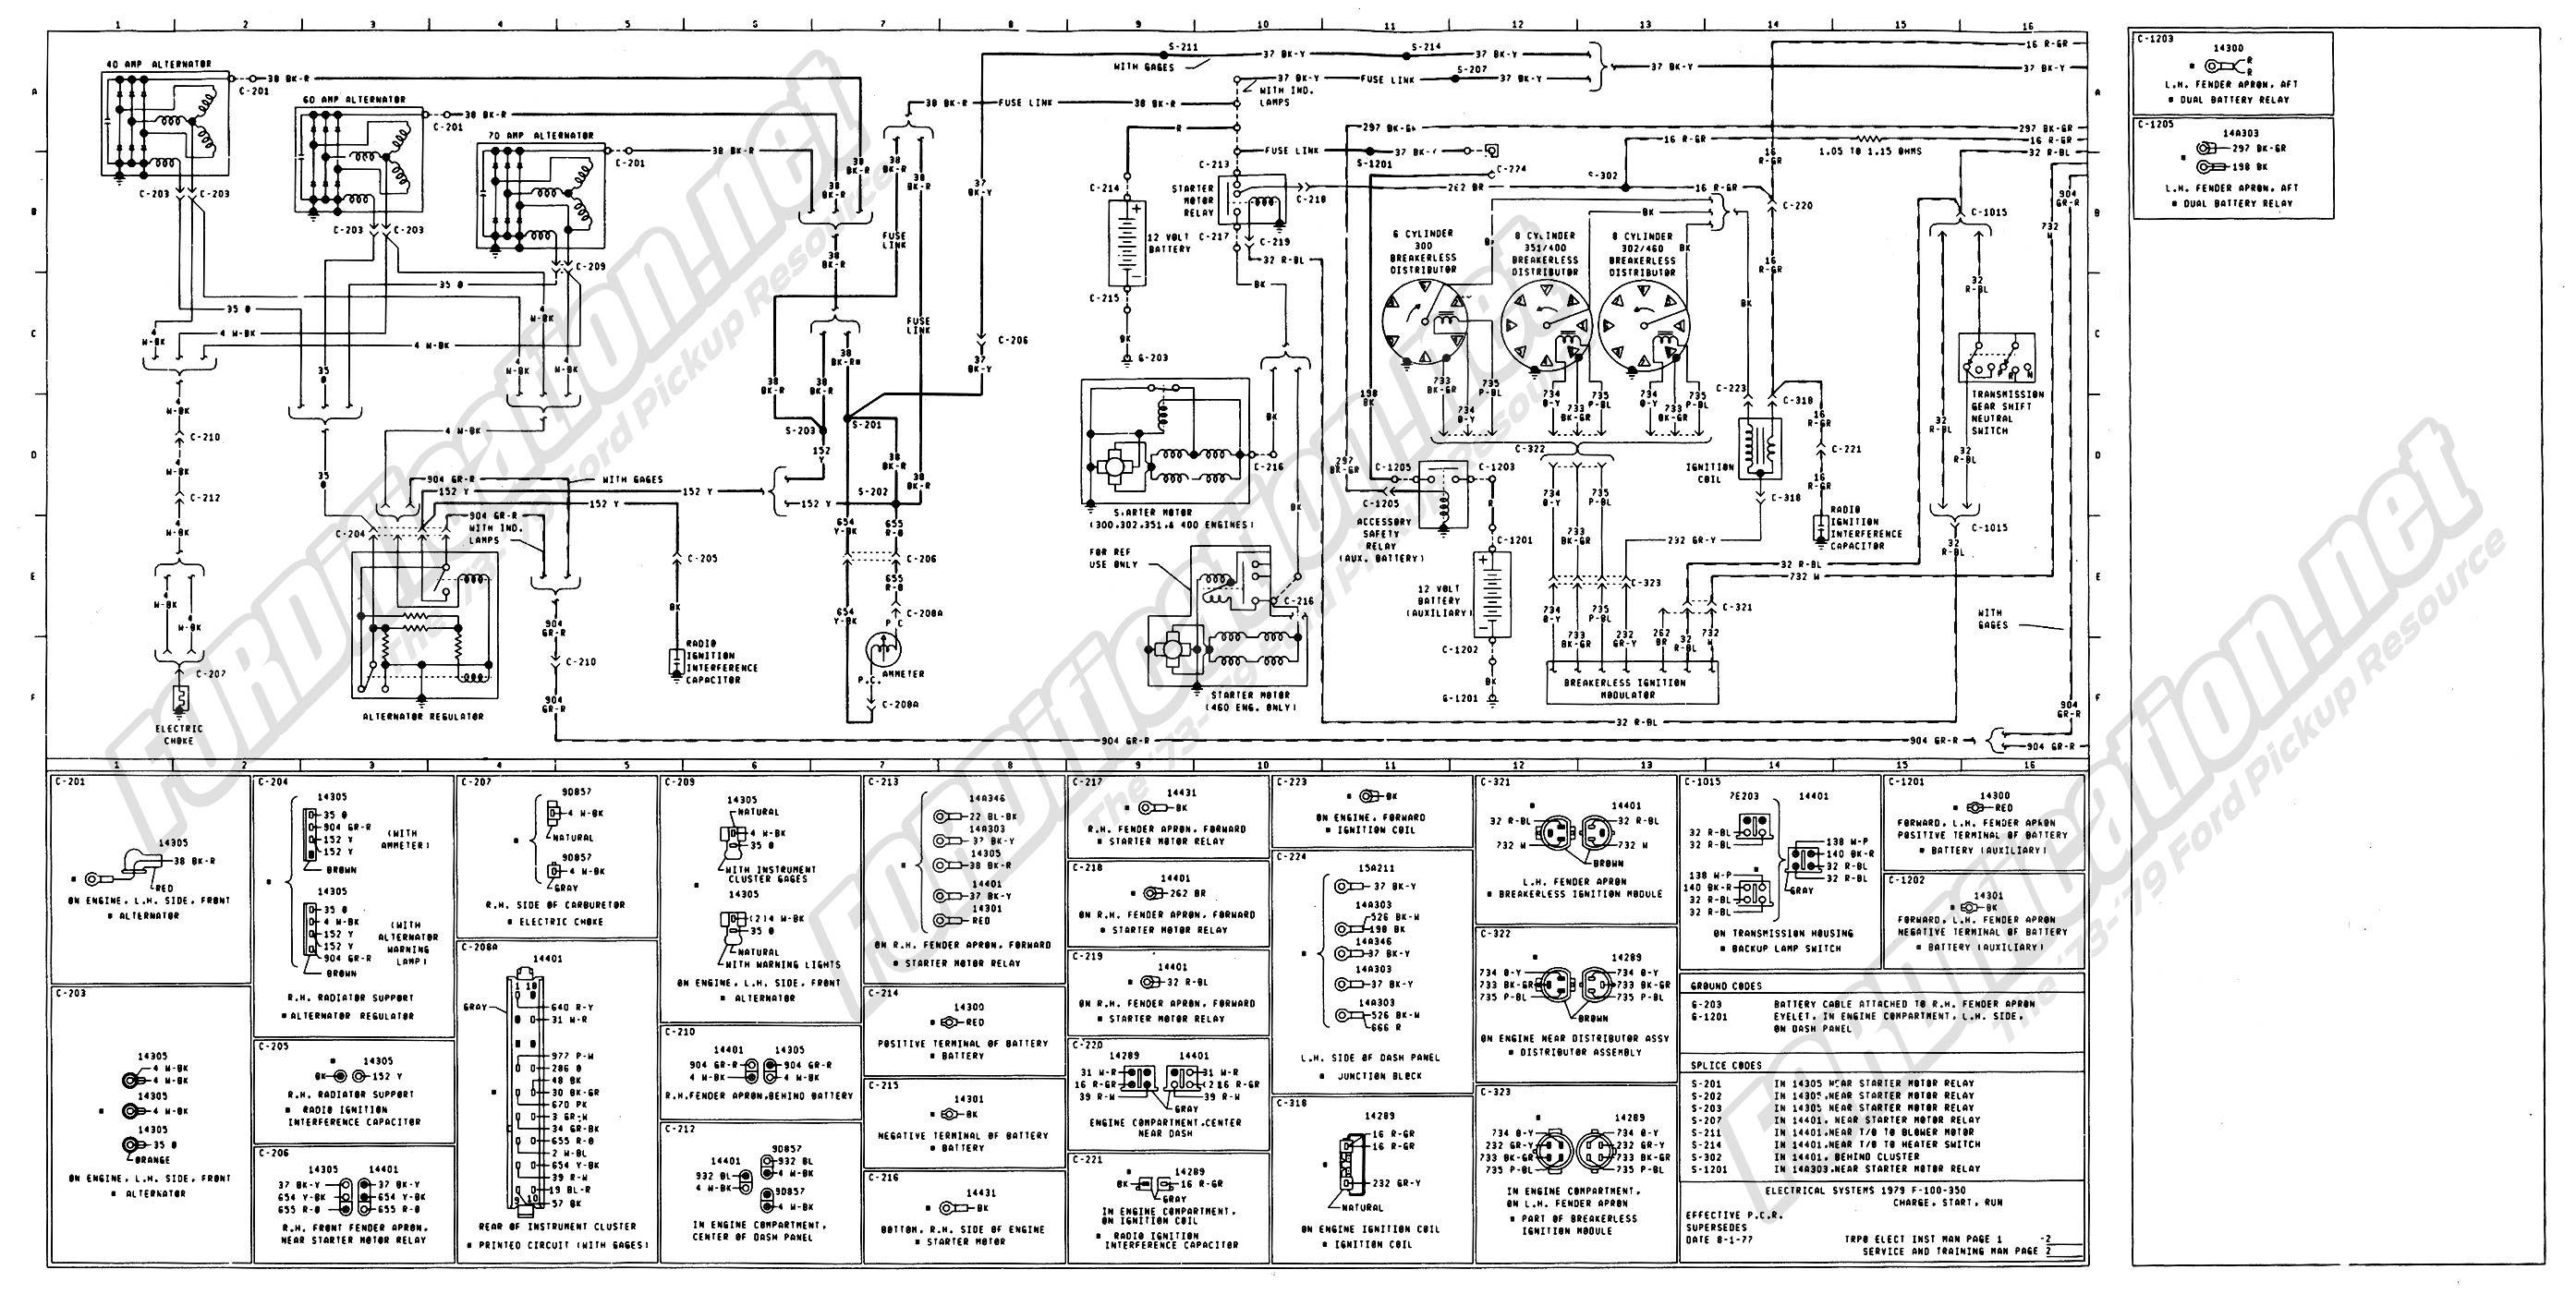 Ford F Wiring Diagram on 06 ford f150 firing order, 96 ford f150 wiring diagram, 03 ford f150 wiring diagram, 06 ford f150 seats, 06 ford f150 transmission, 06 ford f150 lights, 06 ford f-350 wiring diagram, 06 ford f150 heater, 06 ford f150 wheels,